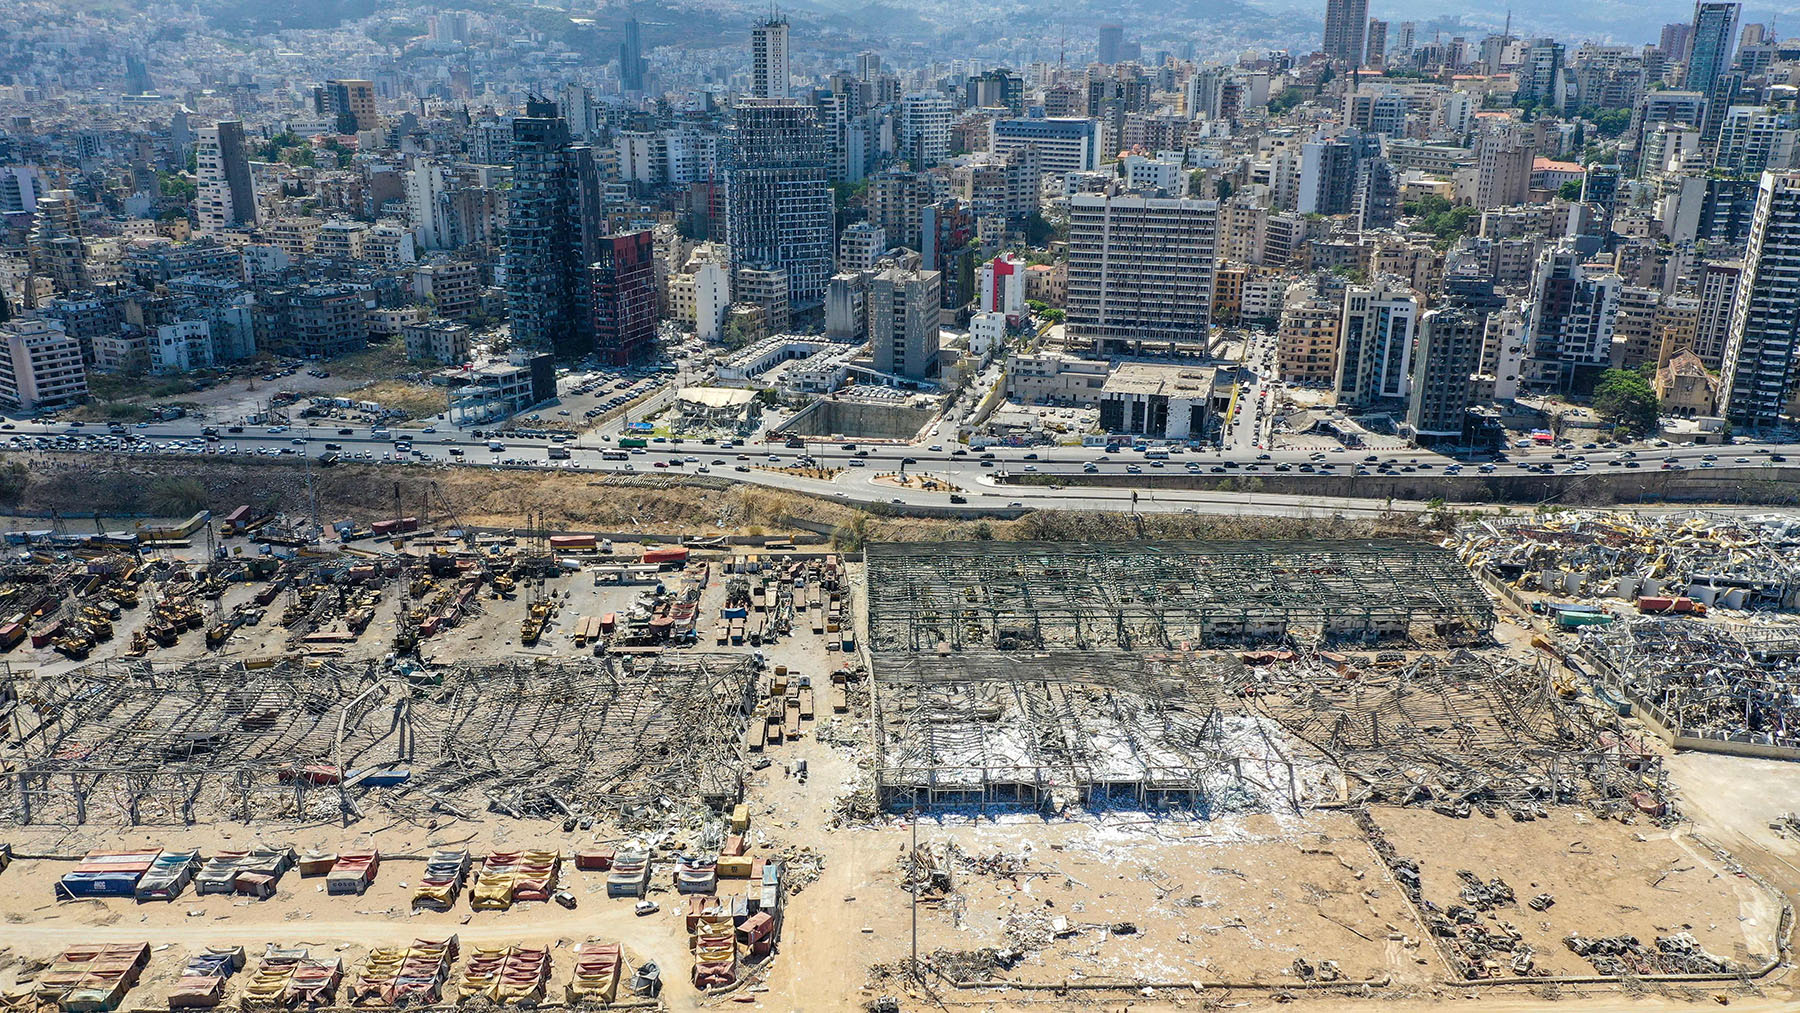 An aerial view taken on August 9, 2020, shows a partial view of the Port of Beirut, damaged as a result of last week's explosion. (Photo by AFP via Getty Images)